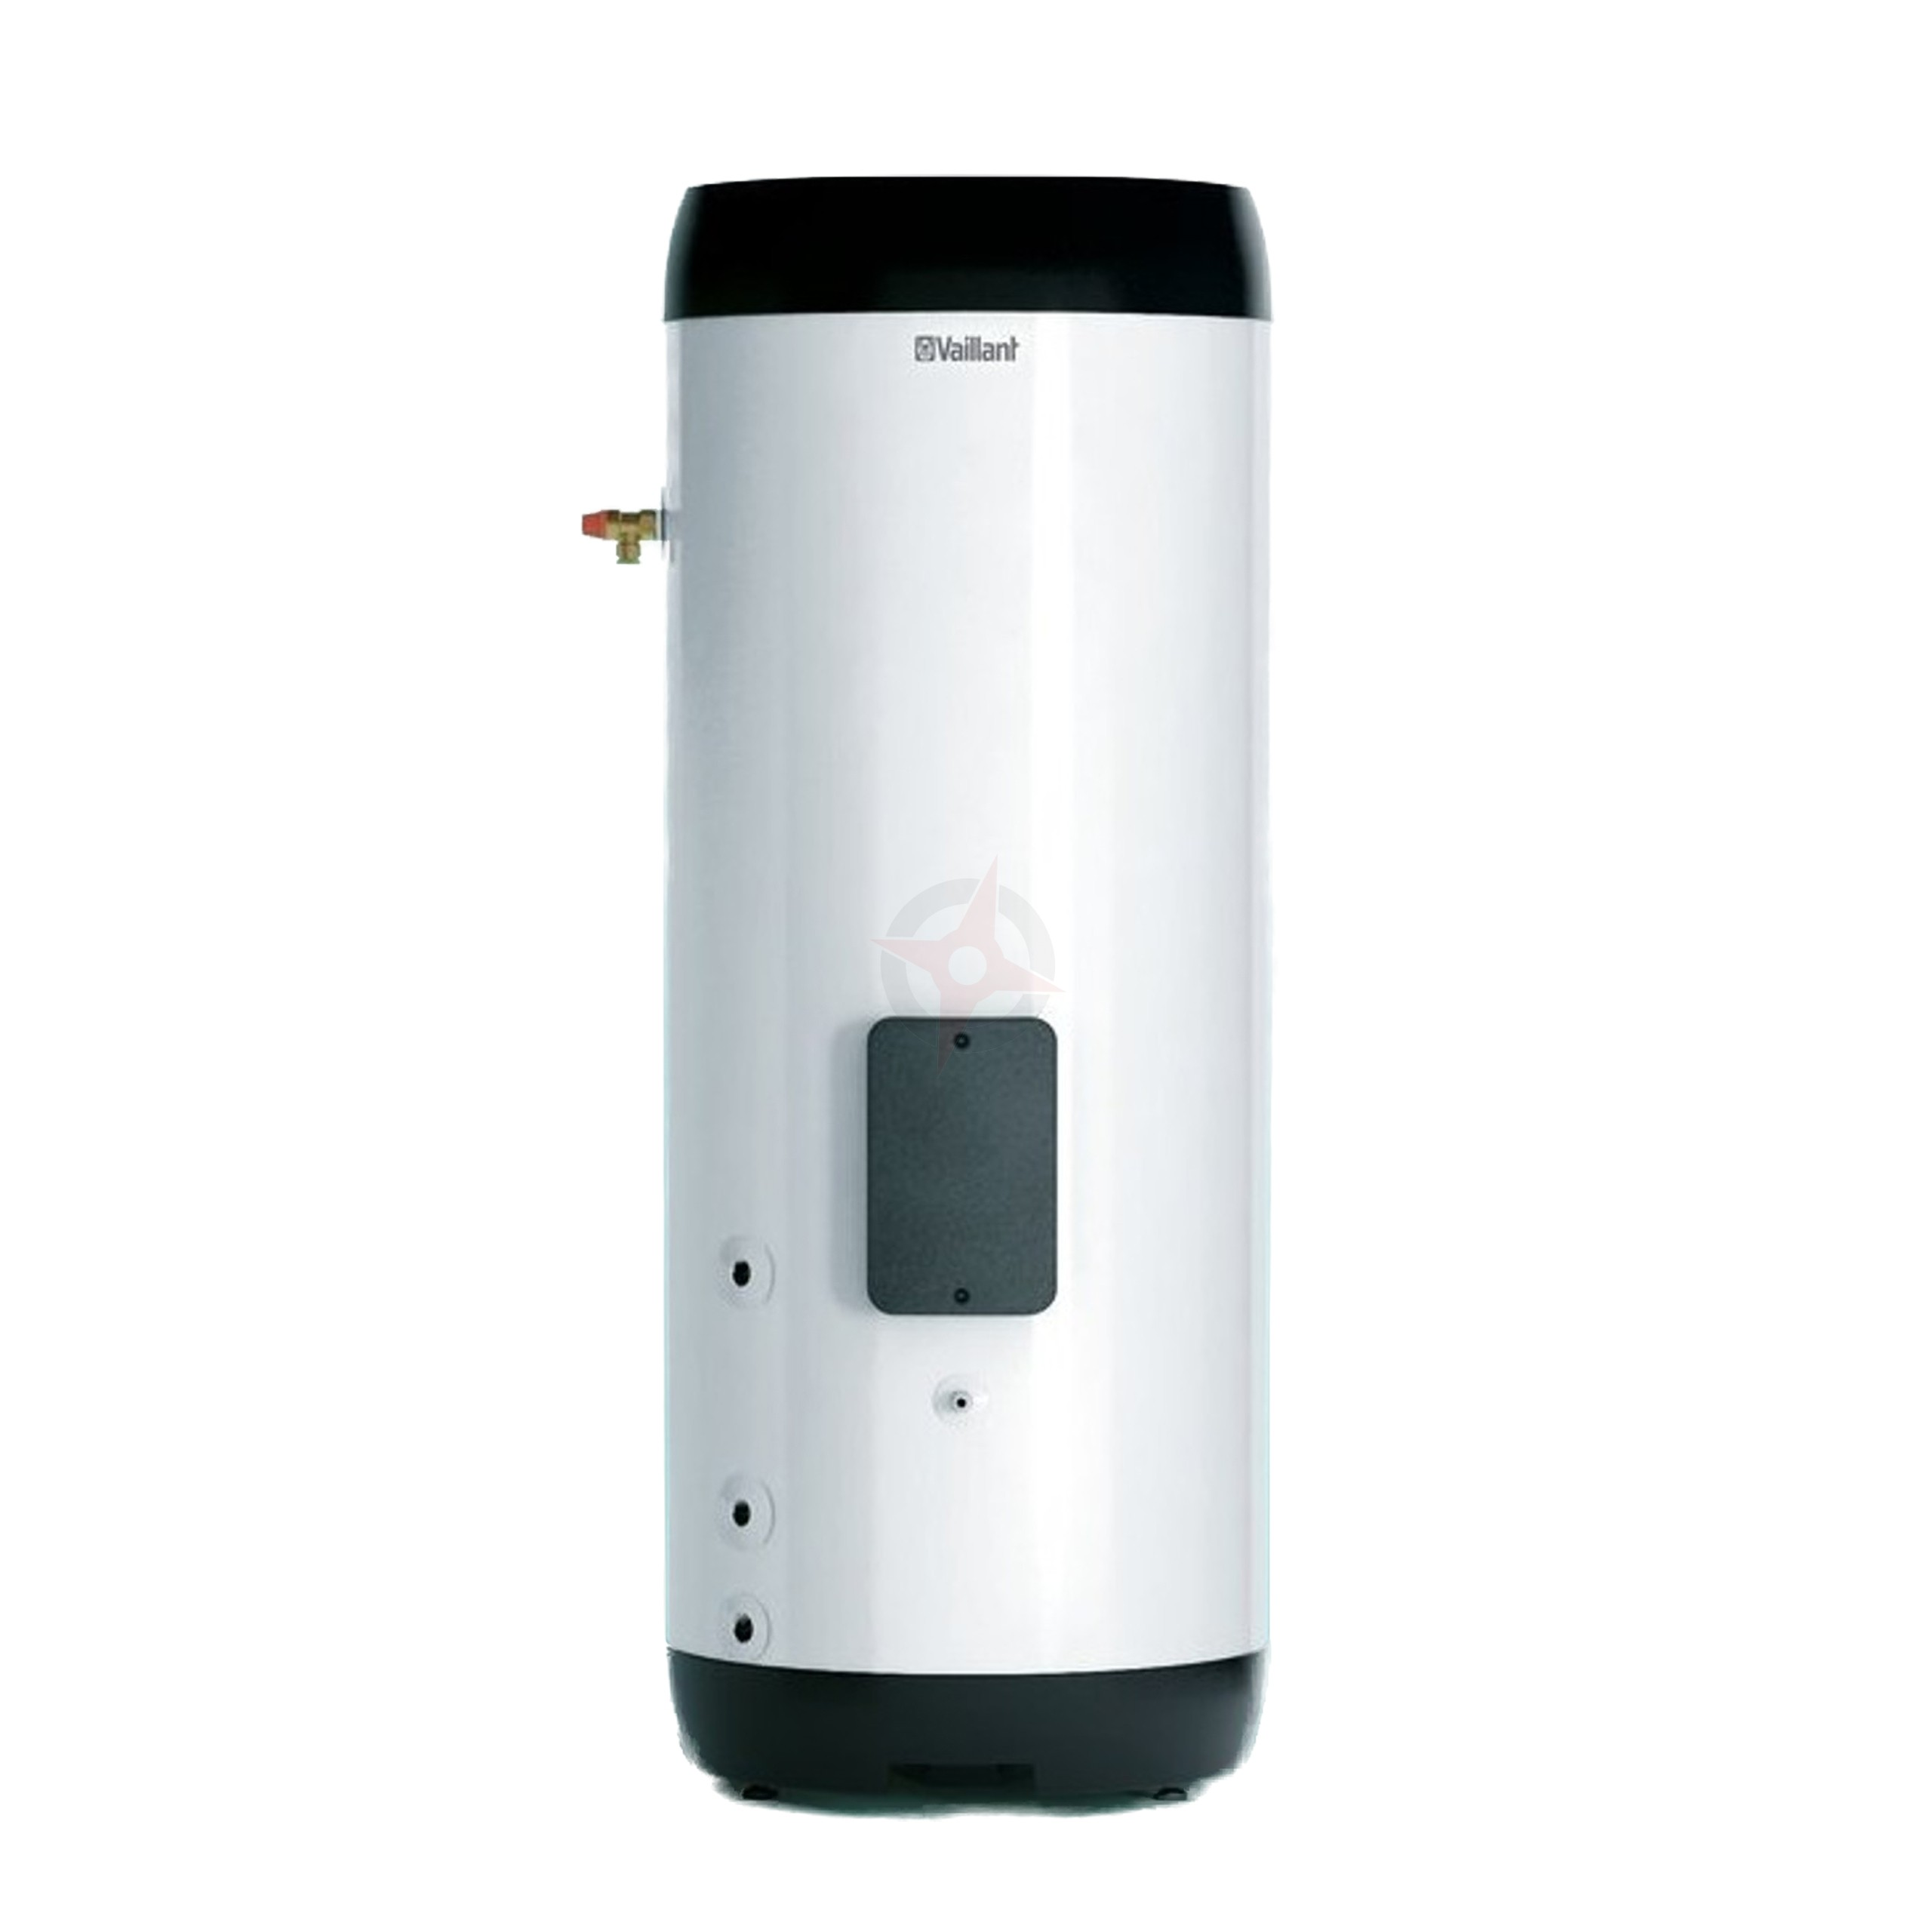 Vaillant uniSTOR 180 Unvented Hot Water Cylinder